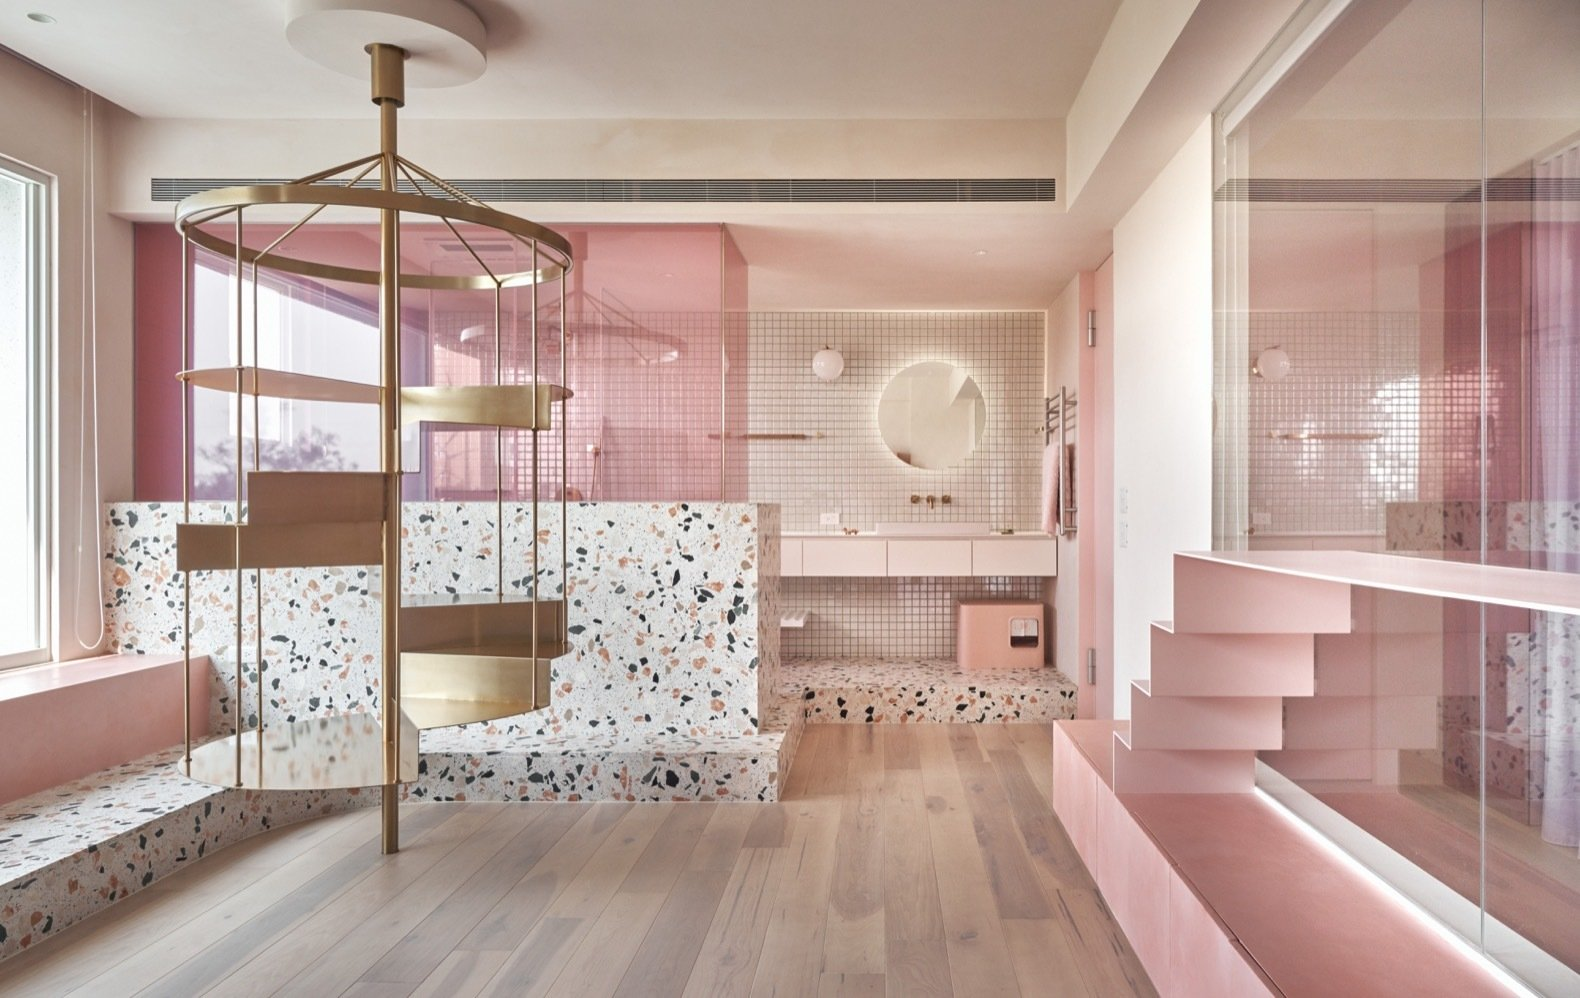 Terrazzo surfaces flecked with pink and a stainless steel mobile/staircase provide cool sleeping areas for the cats in the summertime.